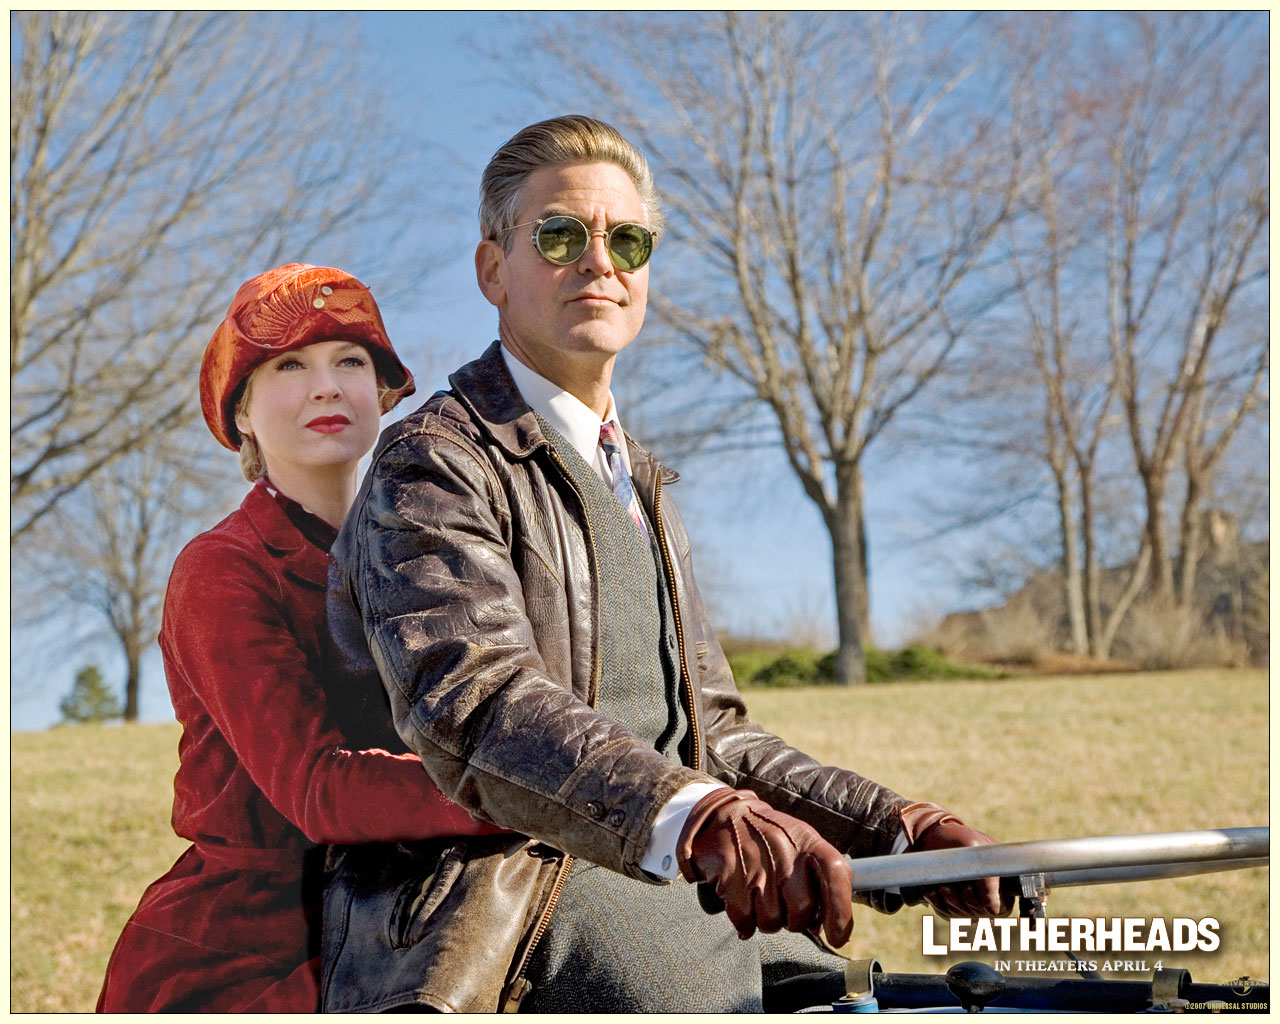 Here's Proof That Clooney Only Gets Better With Age Leatherheads-upcoming-movies-843599_1280_1024